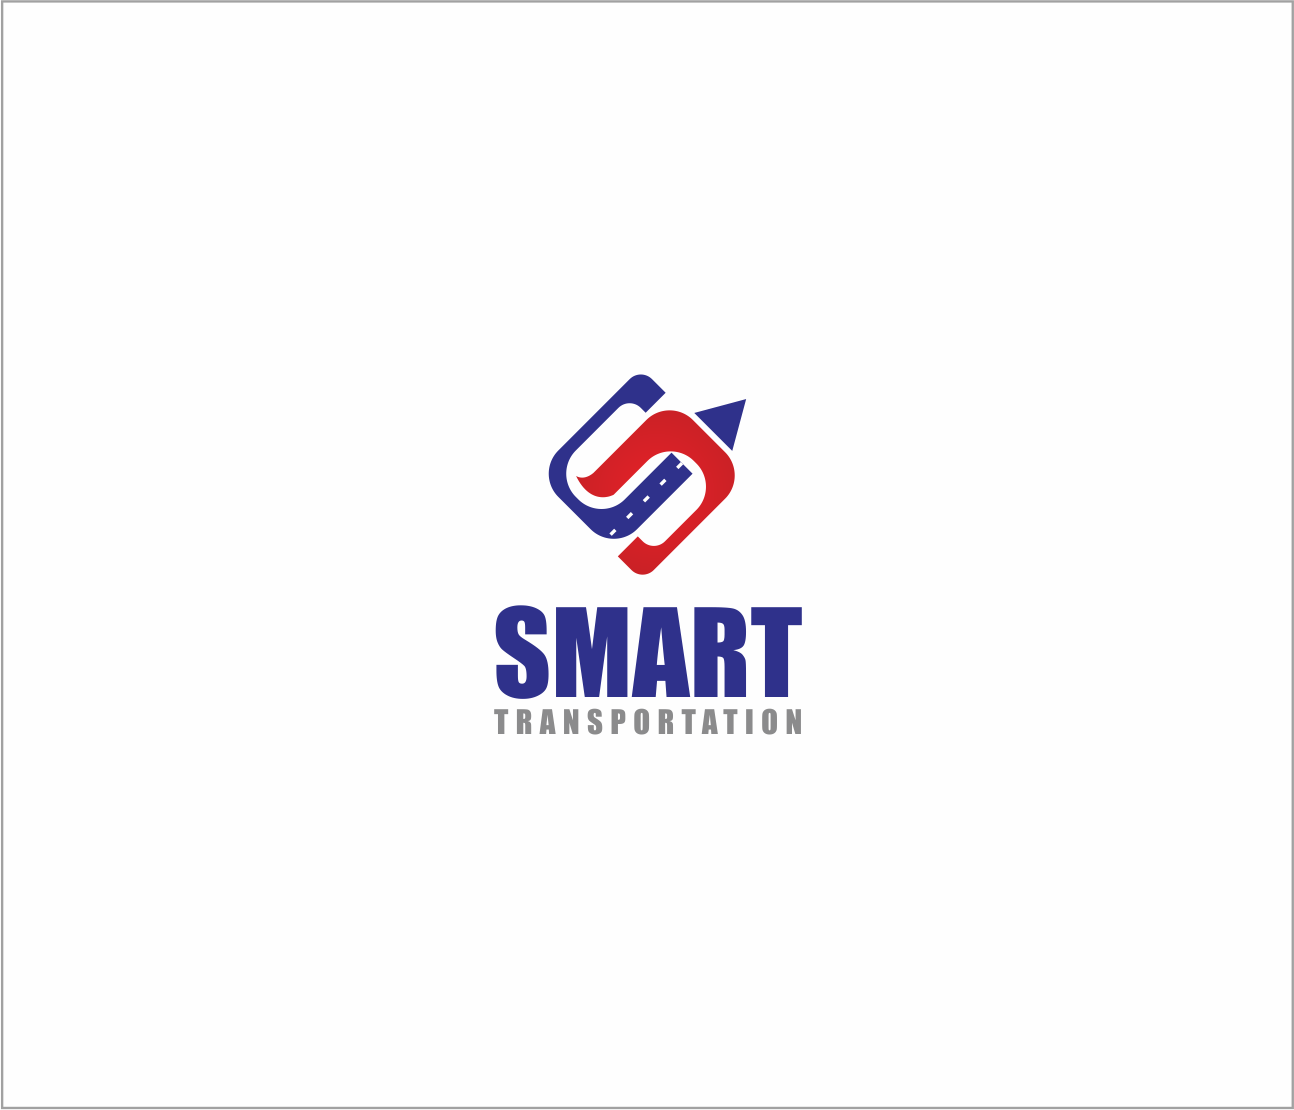 Logo Design by Armada Jamaluddin - Entry No. 154 in the Logo Design Contest Imaginative Logo Design for Smart Transportation.